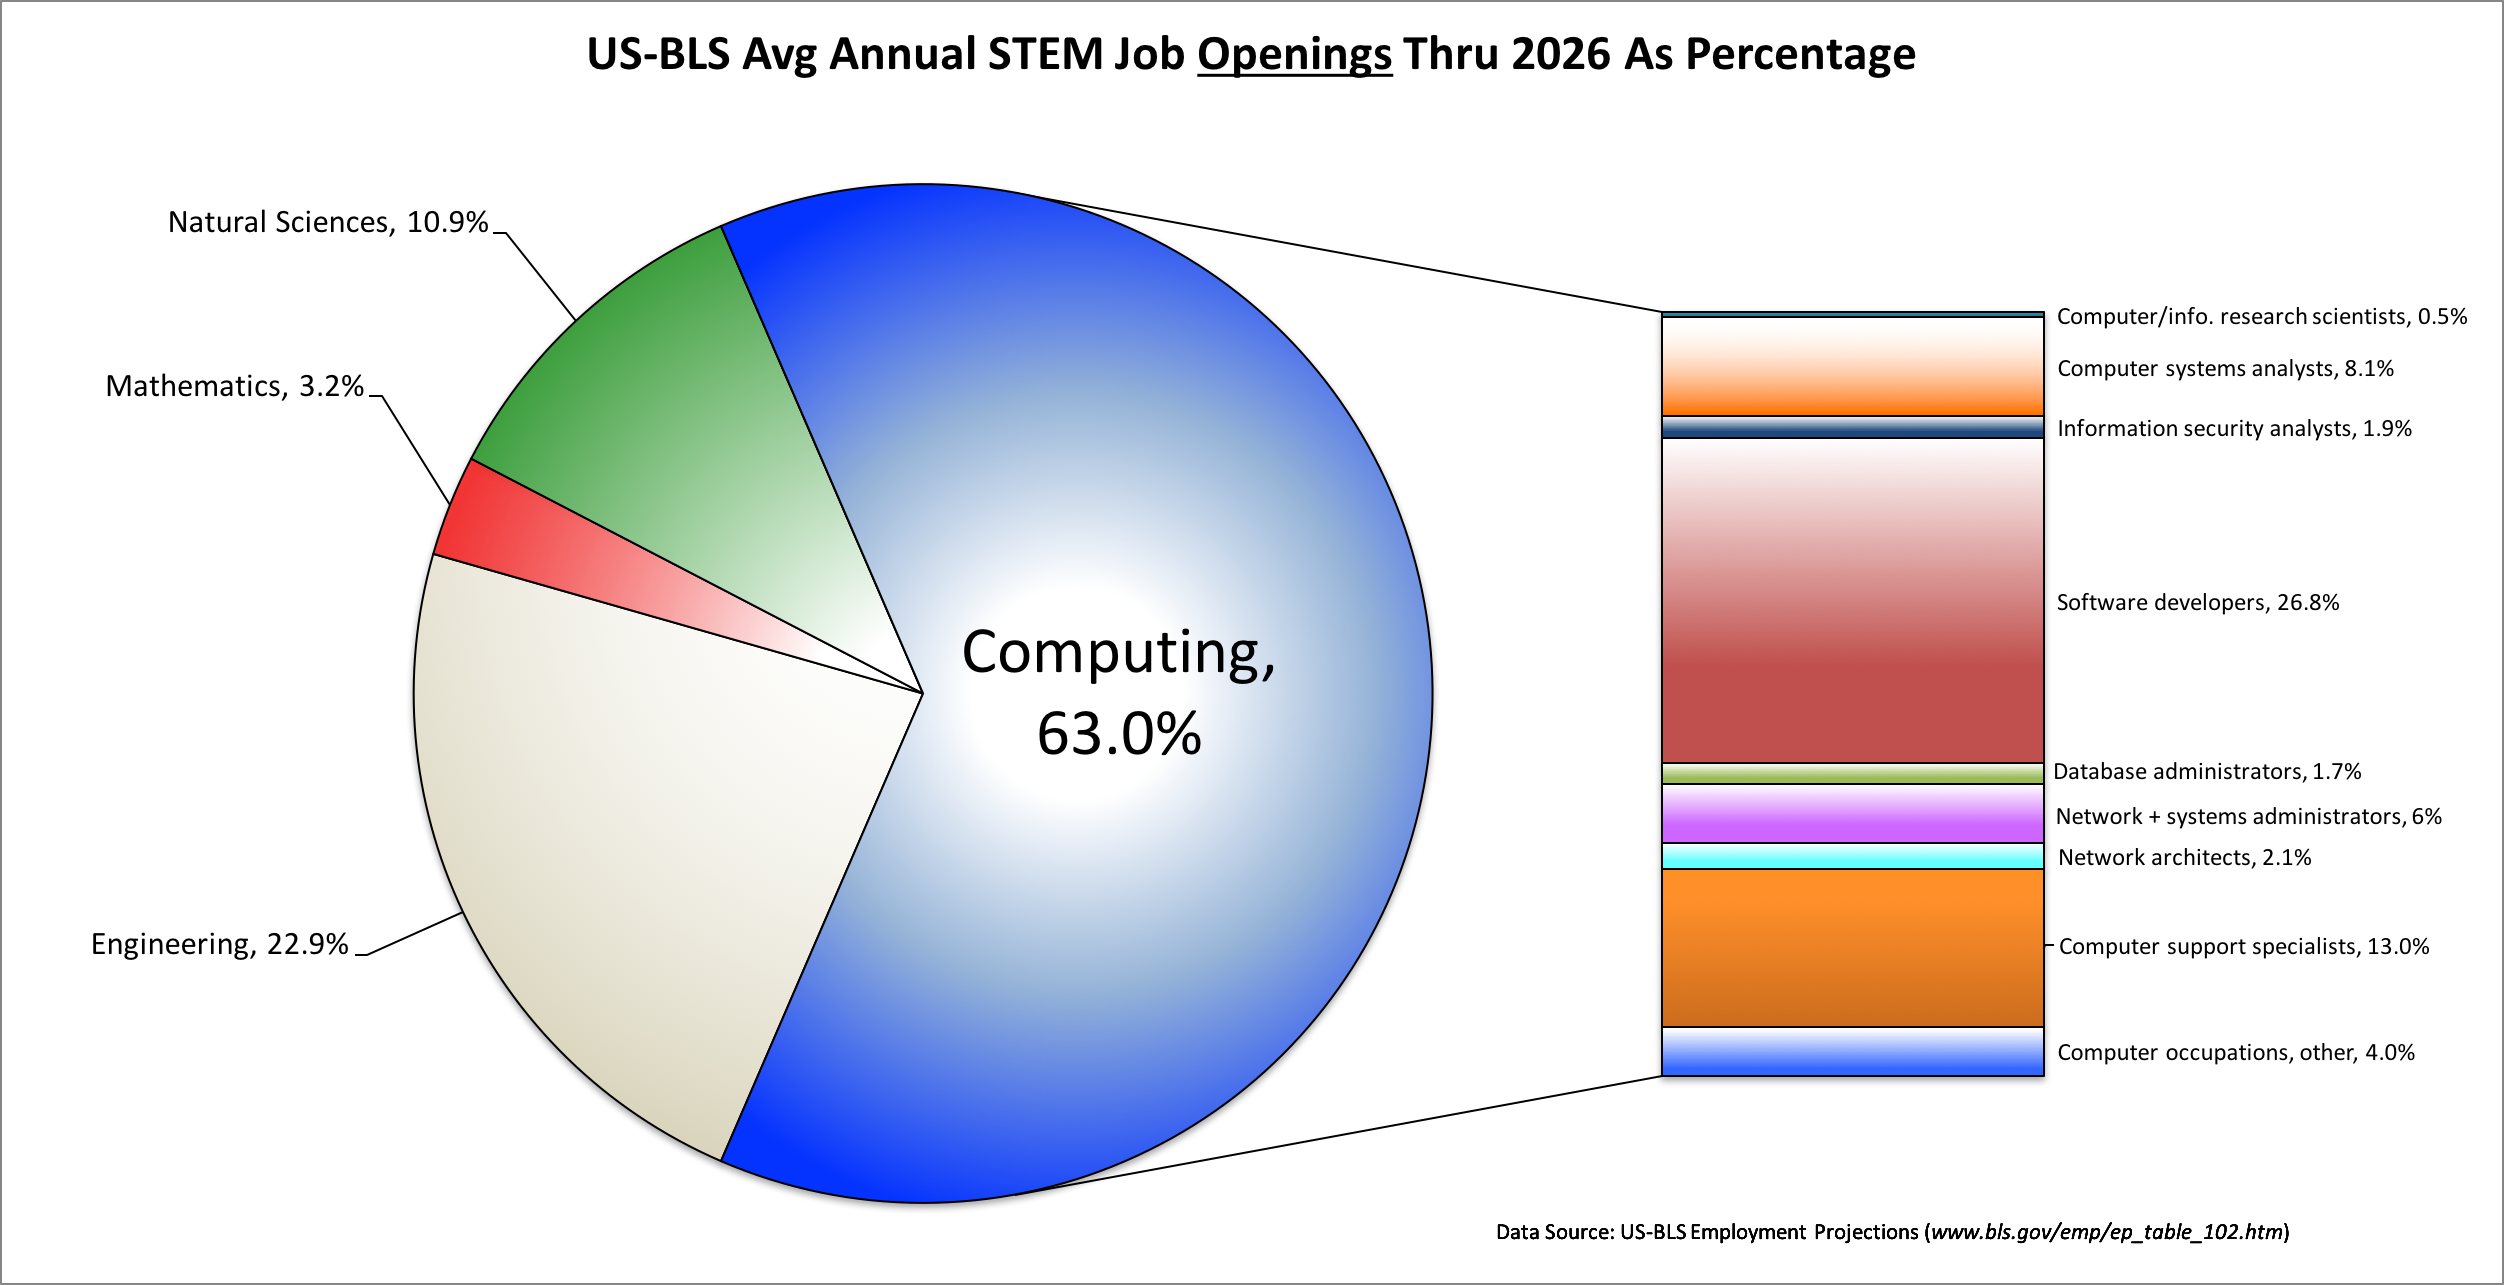 The U.S. Bureau of Labor predicts that between now and 2026, 